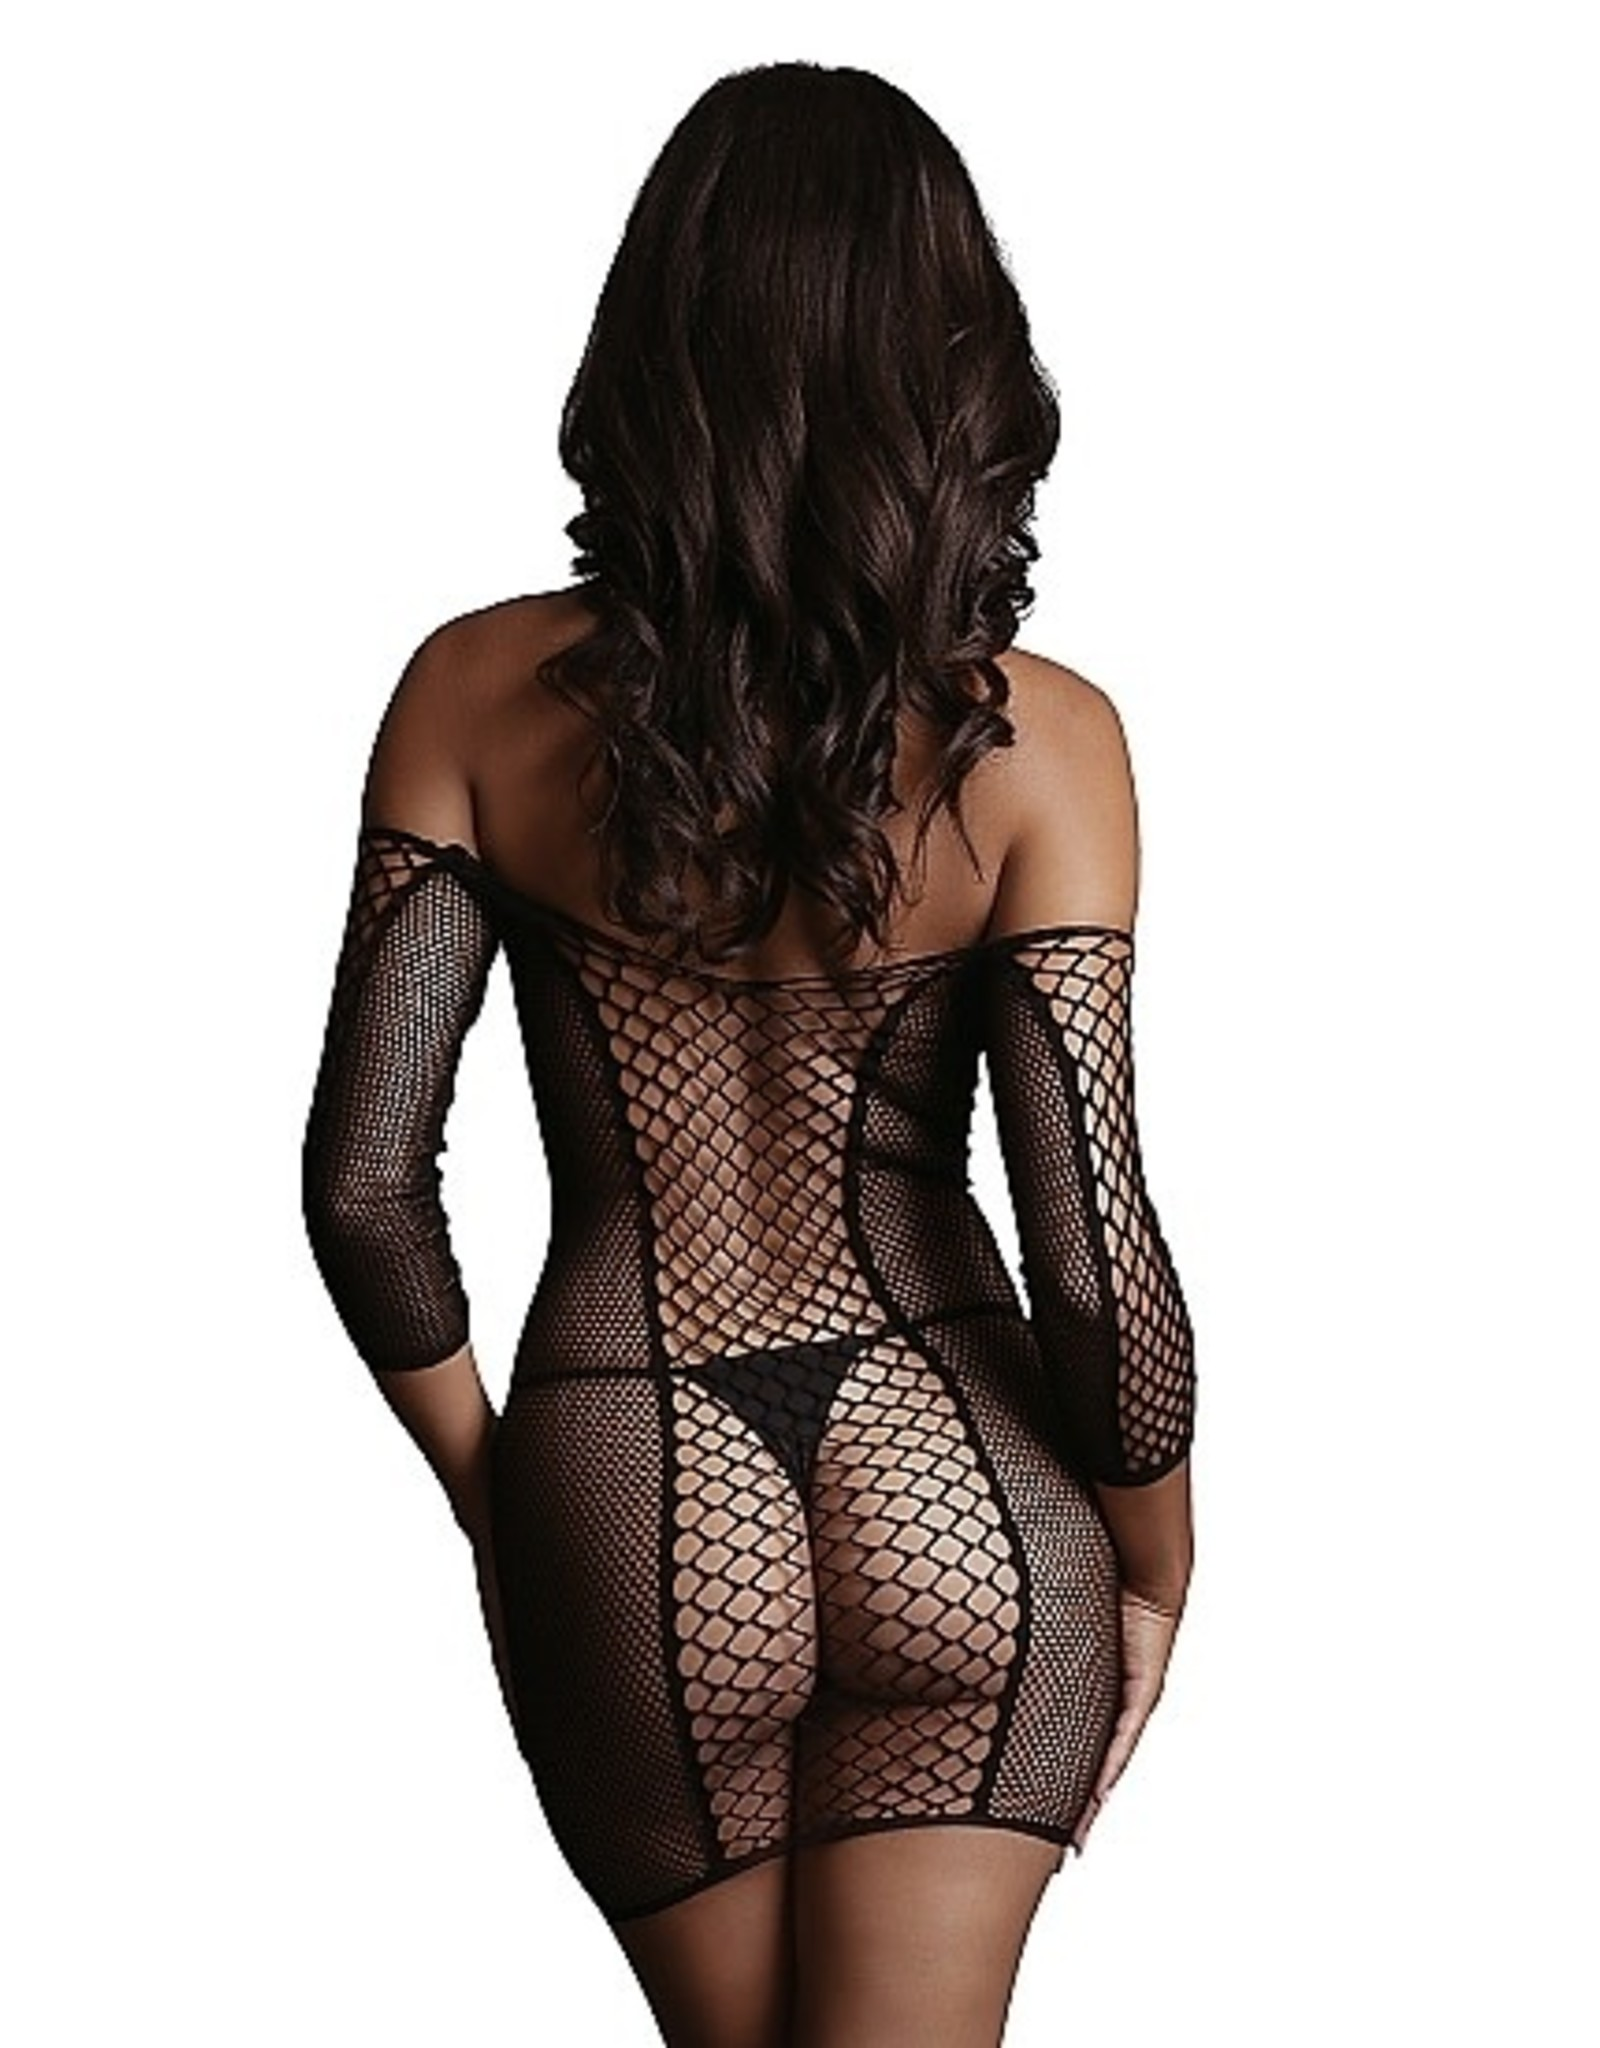 LE DESIR LE DESIR - DUO NET SLEEVED MINI DRESS - BLACK - ONE SIZE